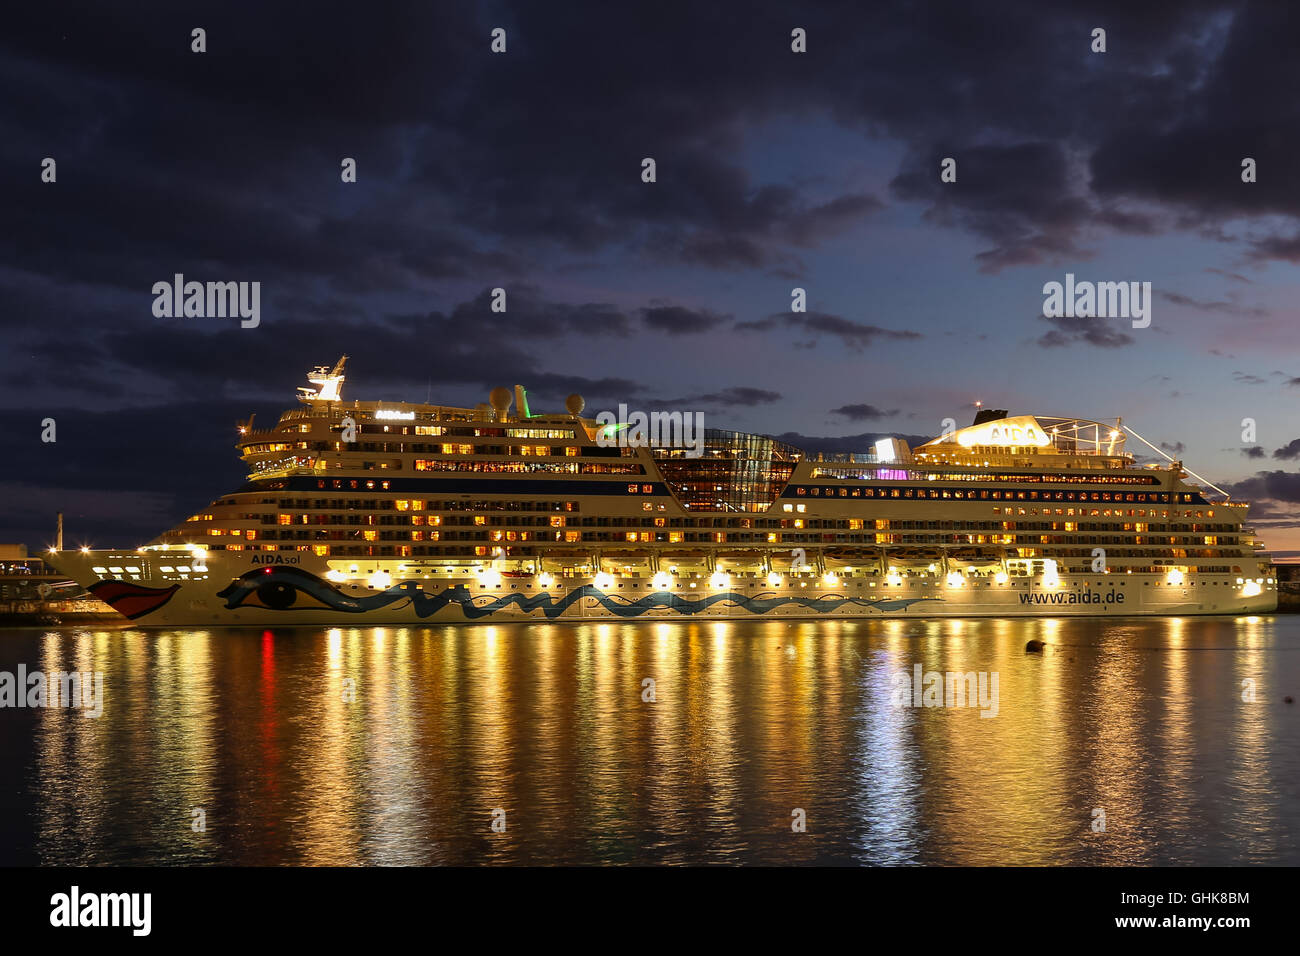 AIDA cruiseship moored in Funchal harbor at night against a sunset sky on the island Madeira - Stock Image